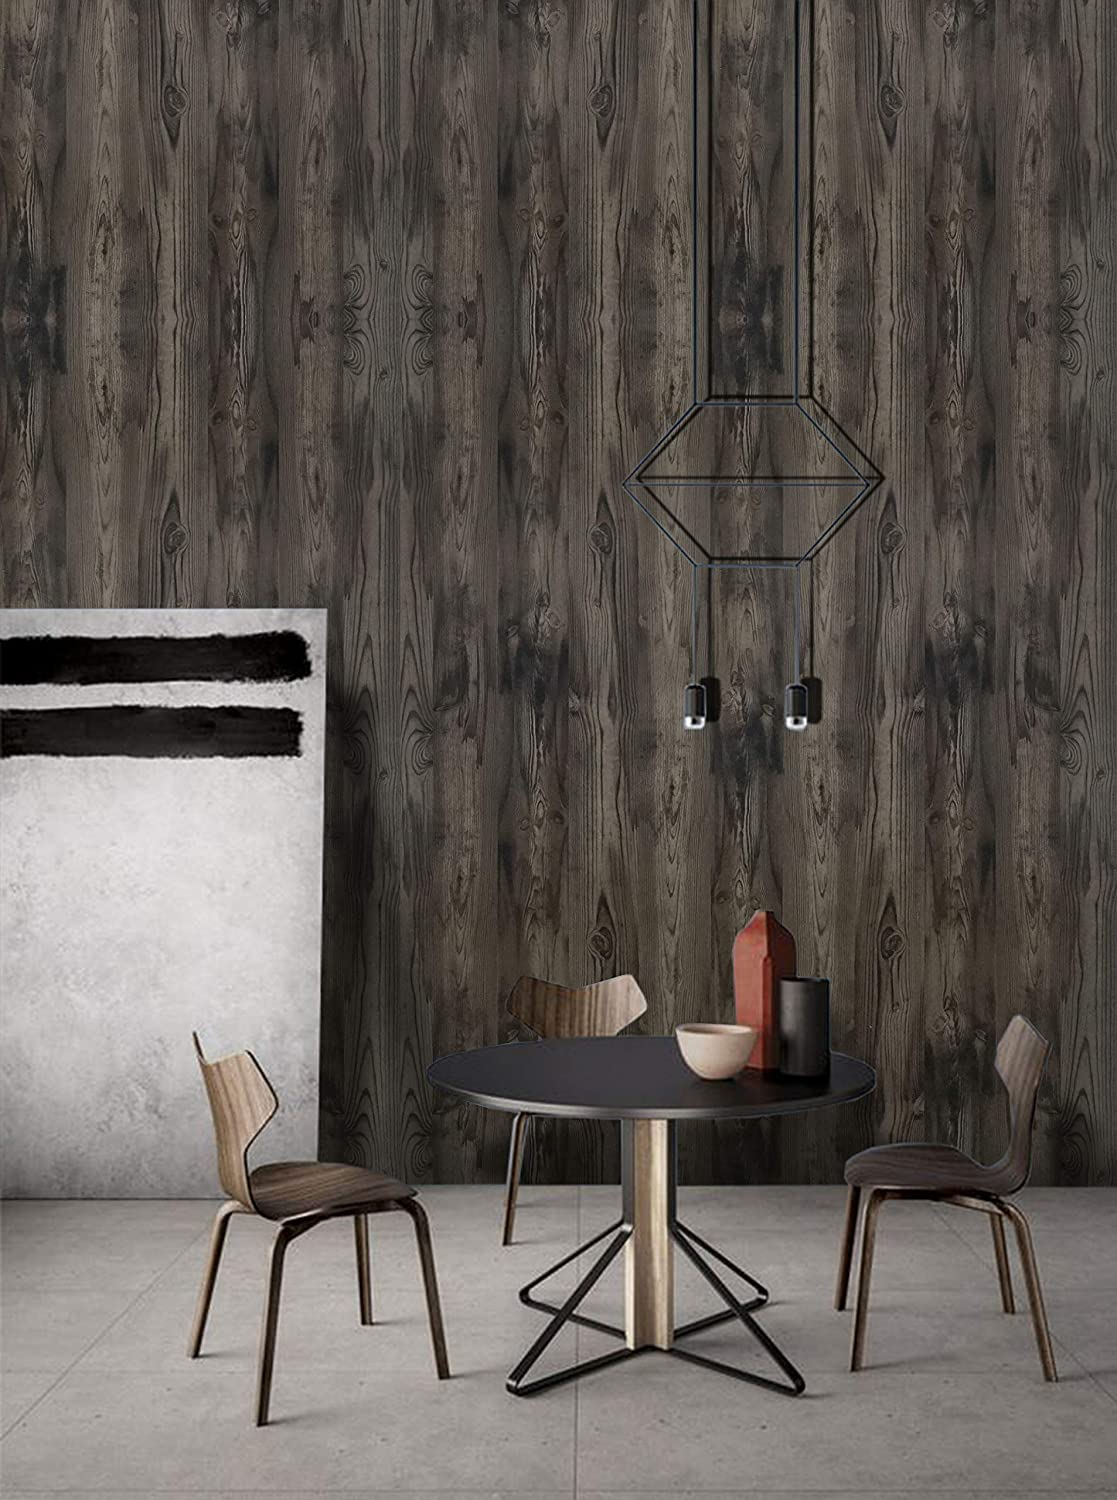 """Wood Contact Paper Wood Grain Contact Paper Wood Wallpaper Removable Wood Peel and Stick Wallpaper Wood Texture Wall Paper Decorative Wall Covering Self Adhesive Wallpaper Vinyl Film Roll 17.7/""""x78.7/"""""""